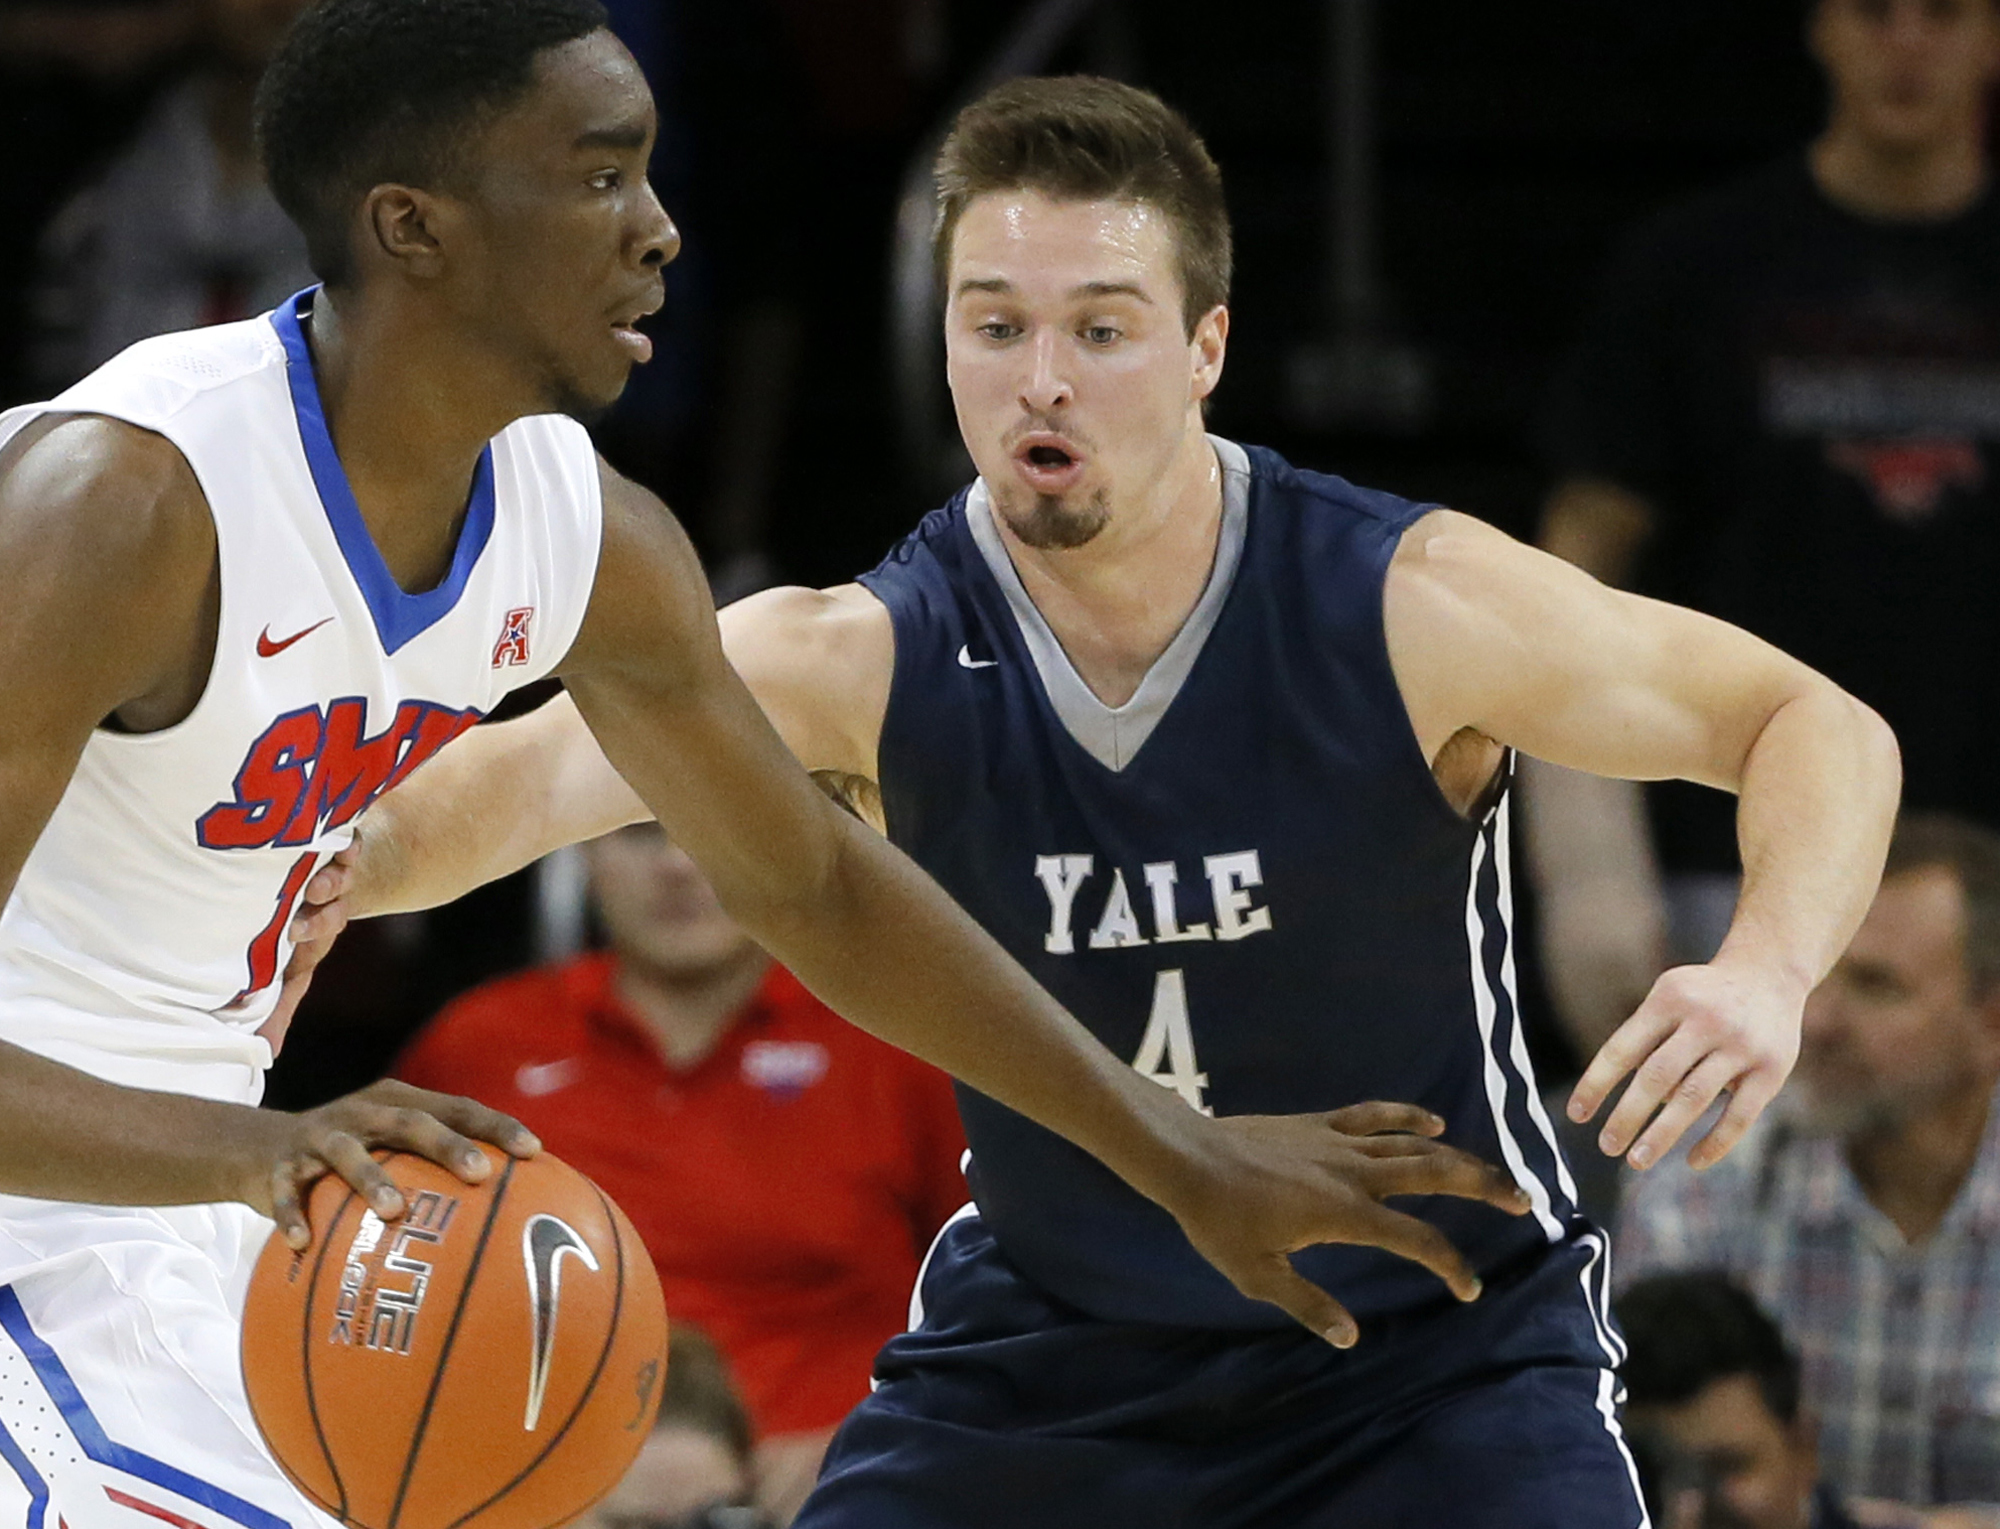 FILE - In this Nov. 22, 2015, file photo, Yale's Jack Montague, right, defends against SMU guard Shake Milton during an NCAA college basketball game in Dallas. An attorney for former Yale basketball captain Jack Montague says the player was expelled over